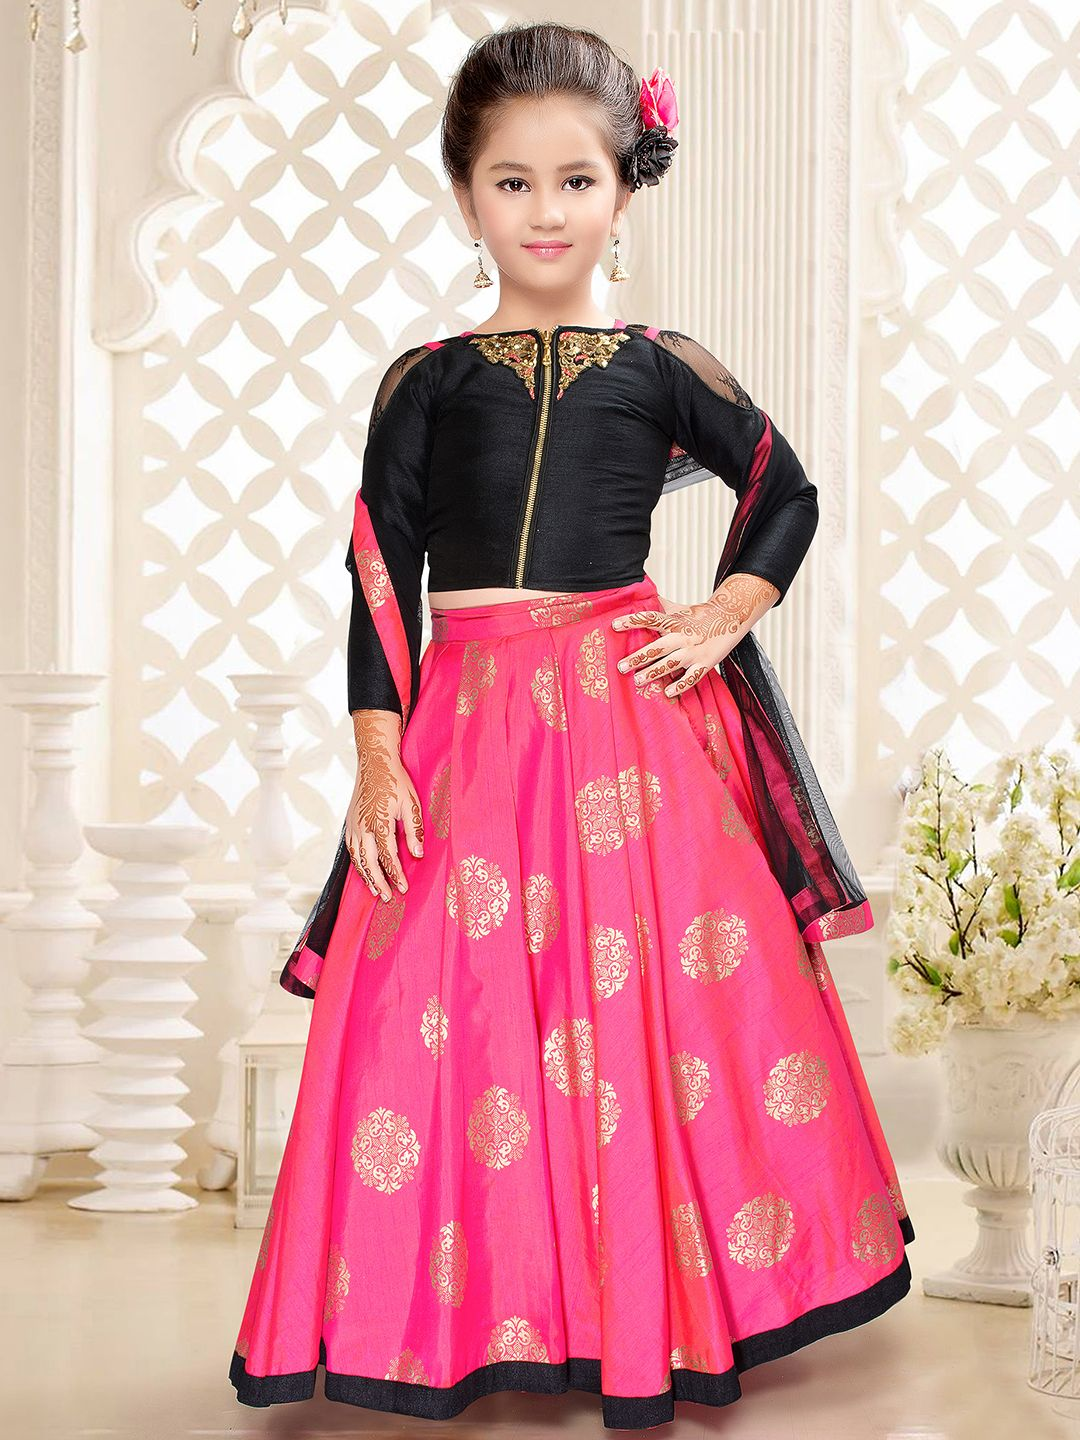 Top Indian wedding style for your little Princess Kids